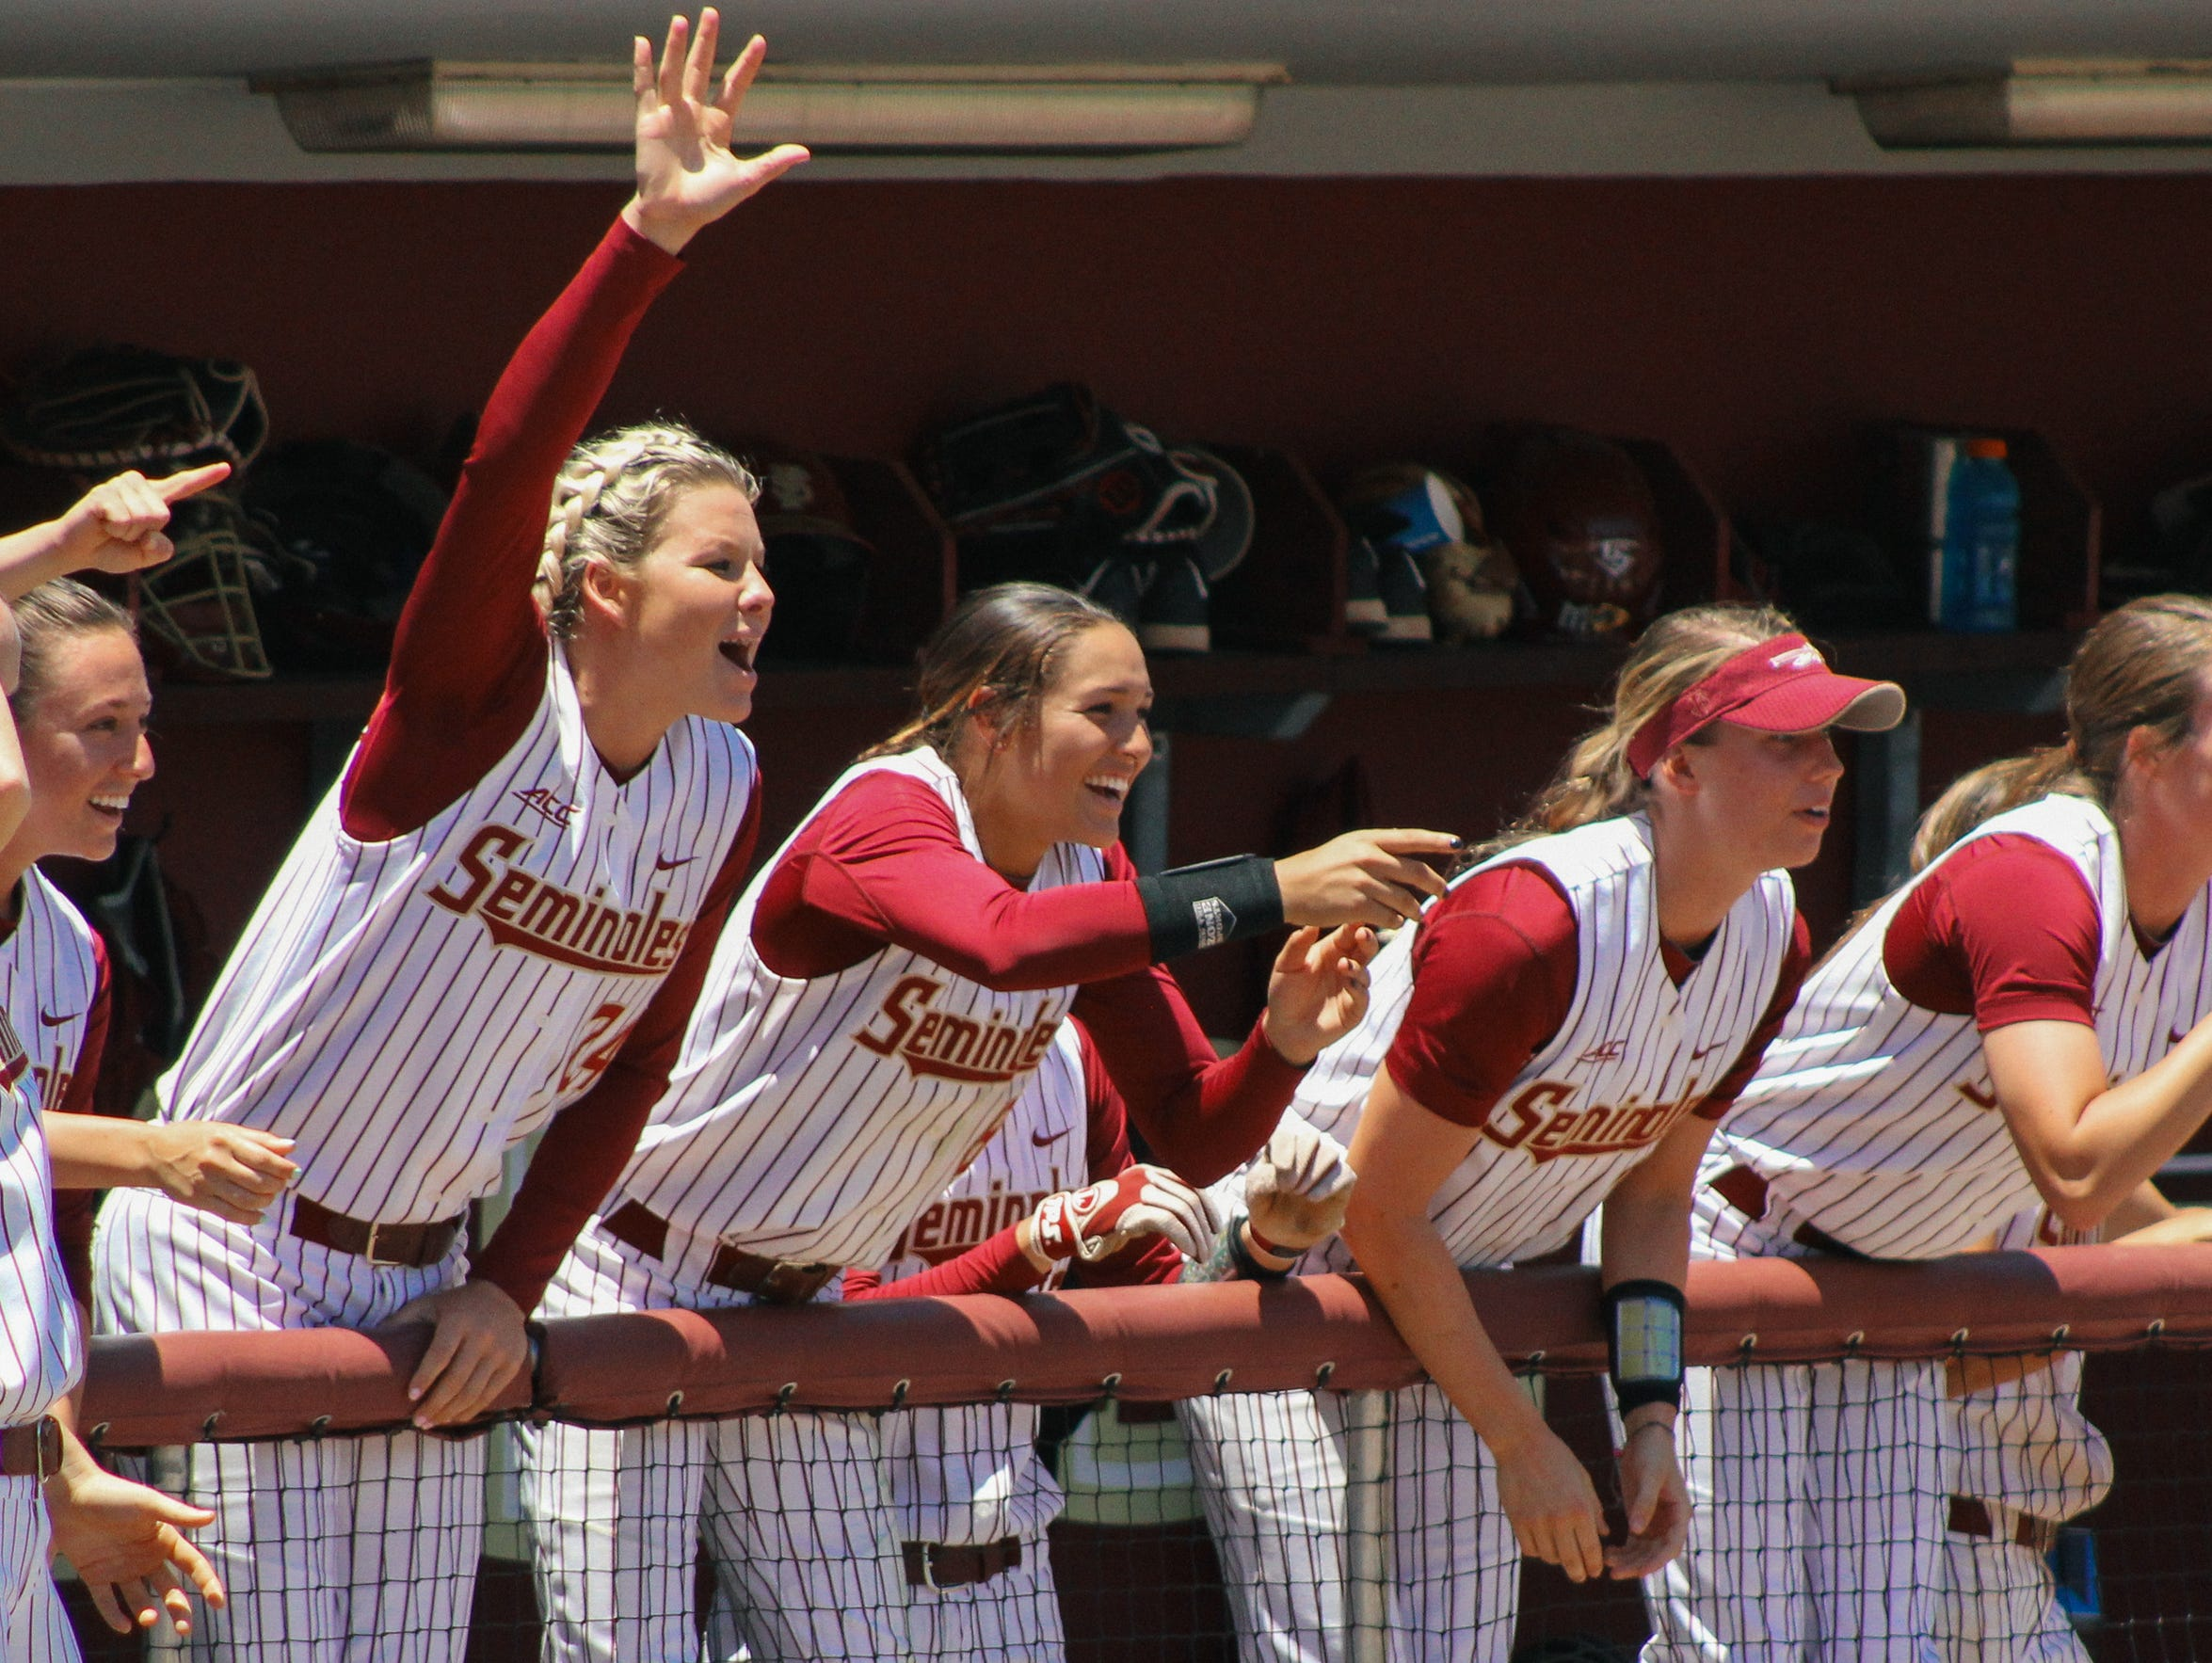 Florida State advanced to the NCAA Super Regionals